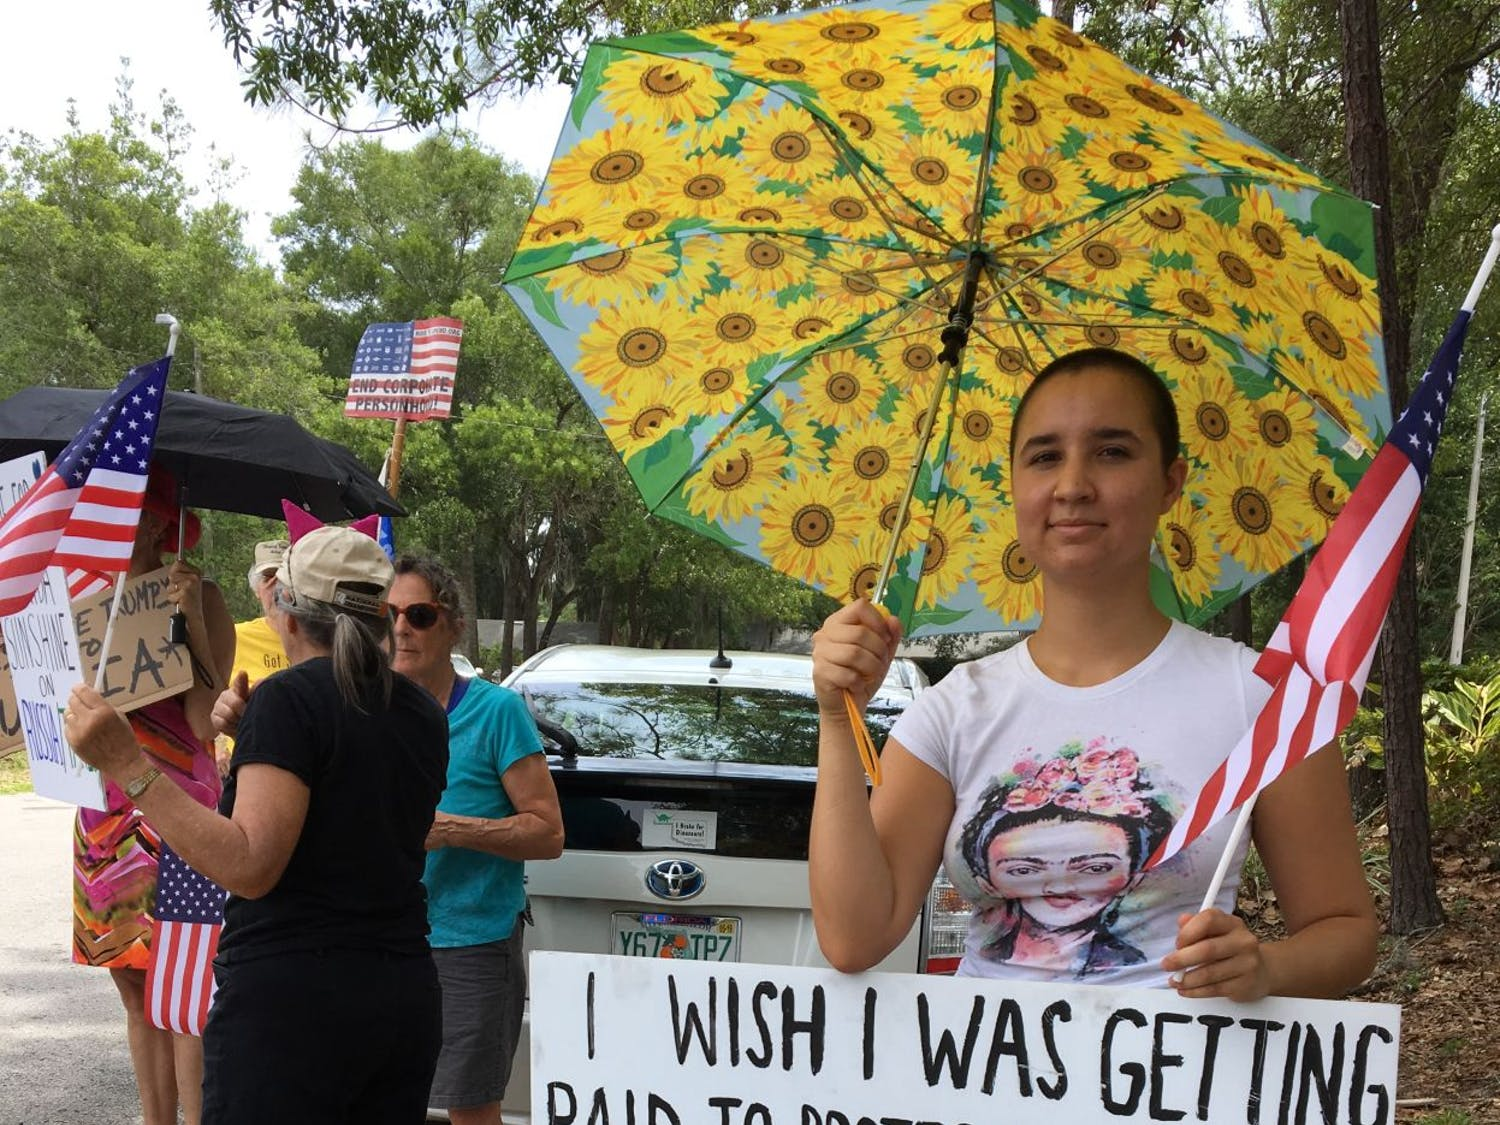 Marcela Mulholland, a 19-year-old UF political science and sustainability studies junior, stands outside U.S. Rep. Ted Yoho's office on Tuesday afternoon. Mulholland said she believes millennials speaking out will have a huge impact on the future.